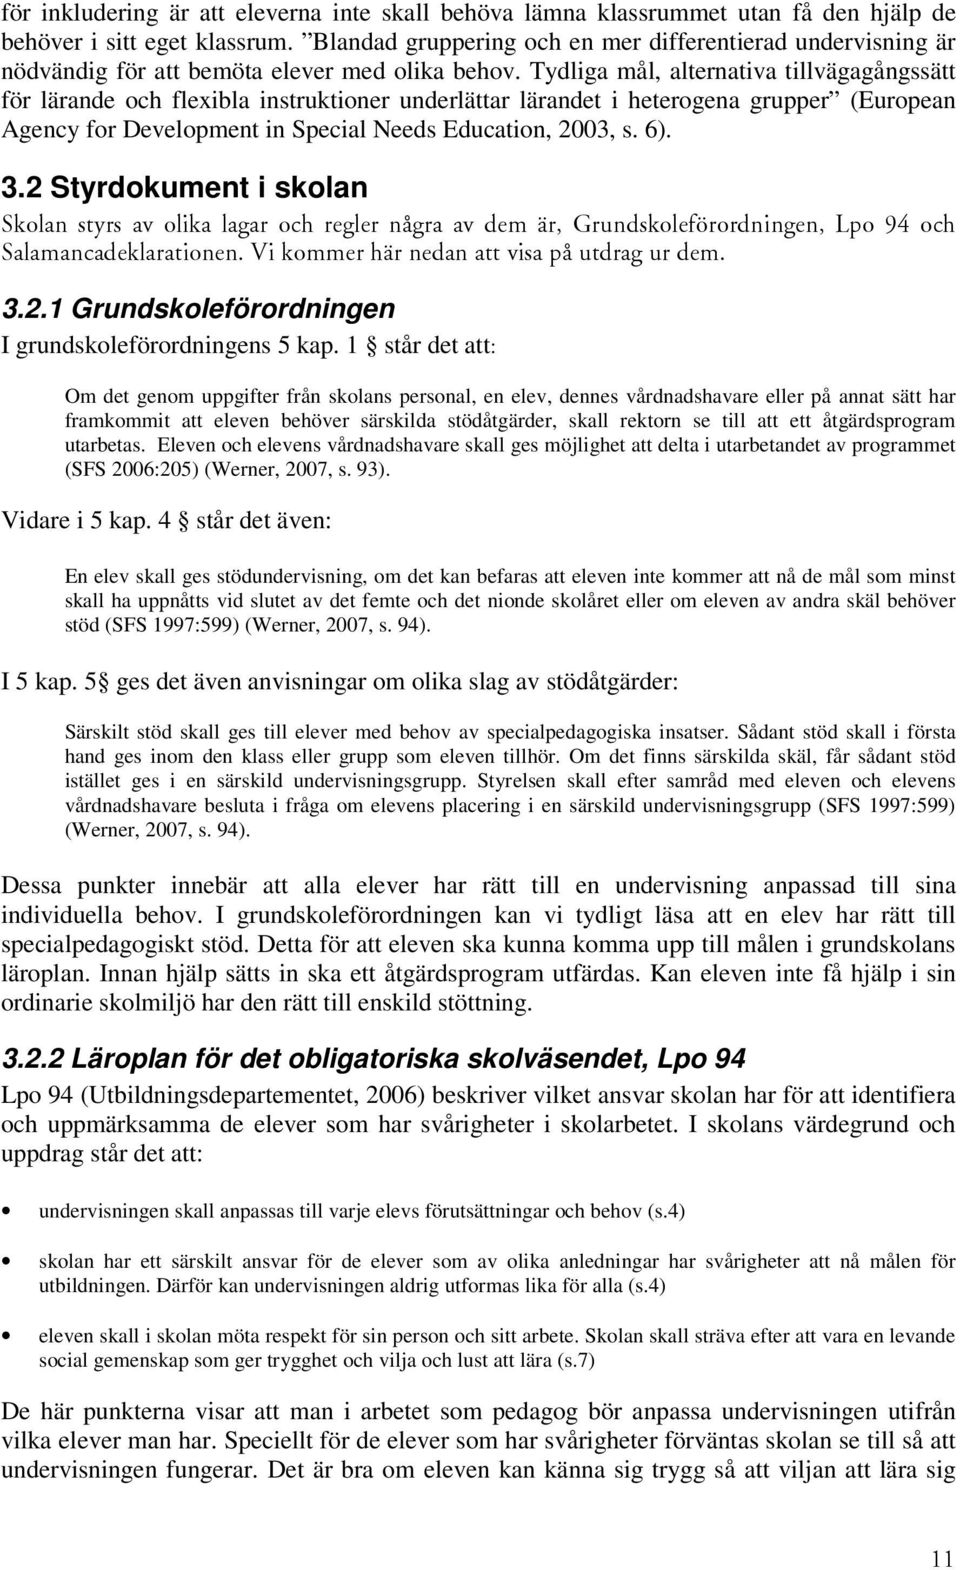 Tydliga mål, alternativa tillvägagångssätt för lärande och flexibla instruktioner underlättar lärandet i heterogena grupper (European Agency for Development in Special Needs Education, 2003, s. 6). 3.